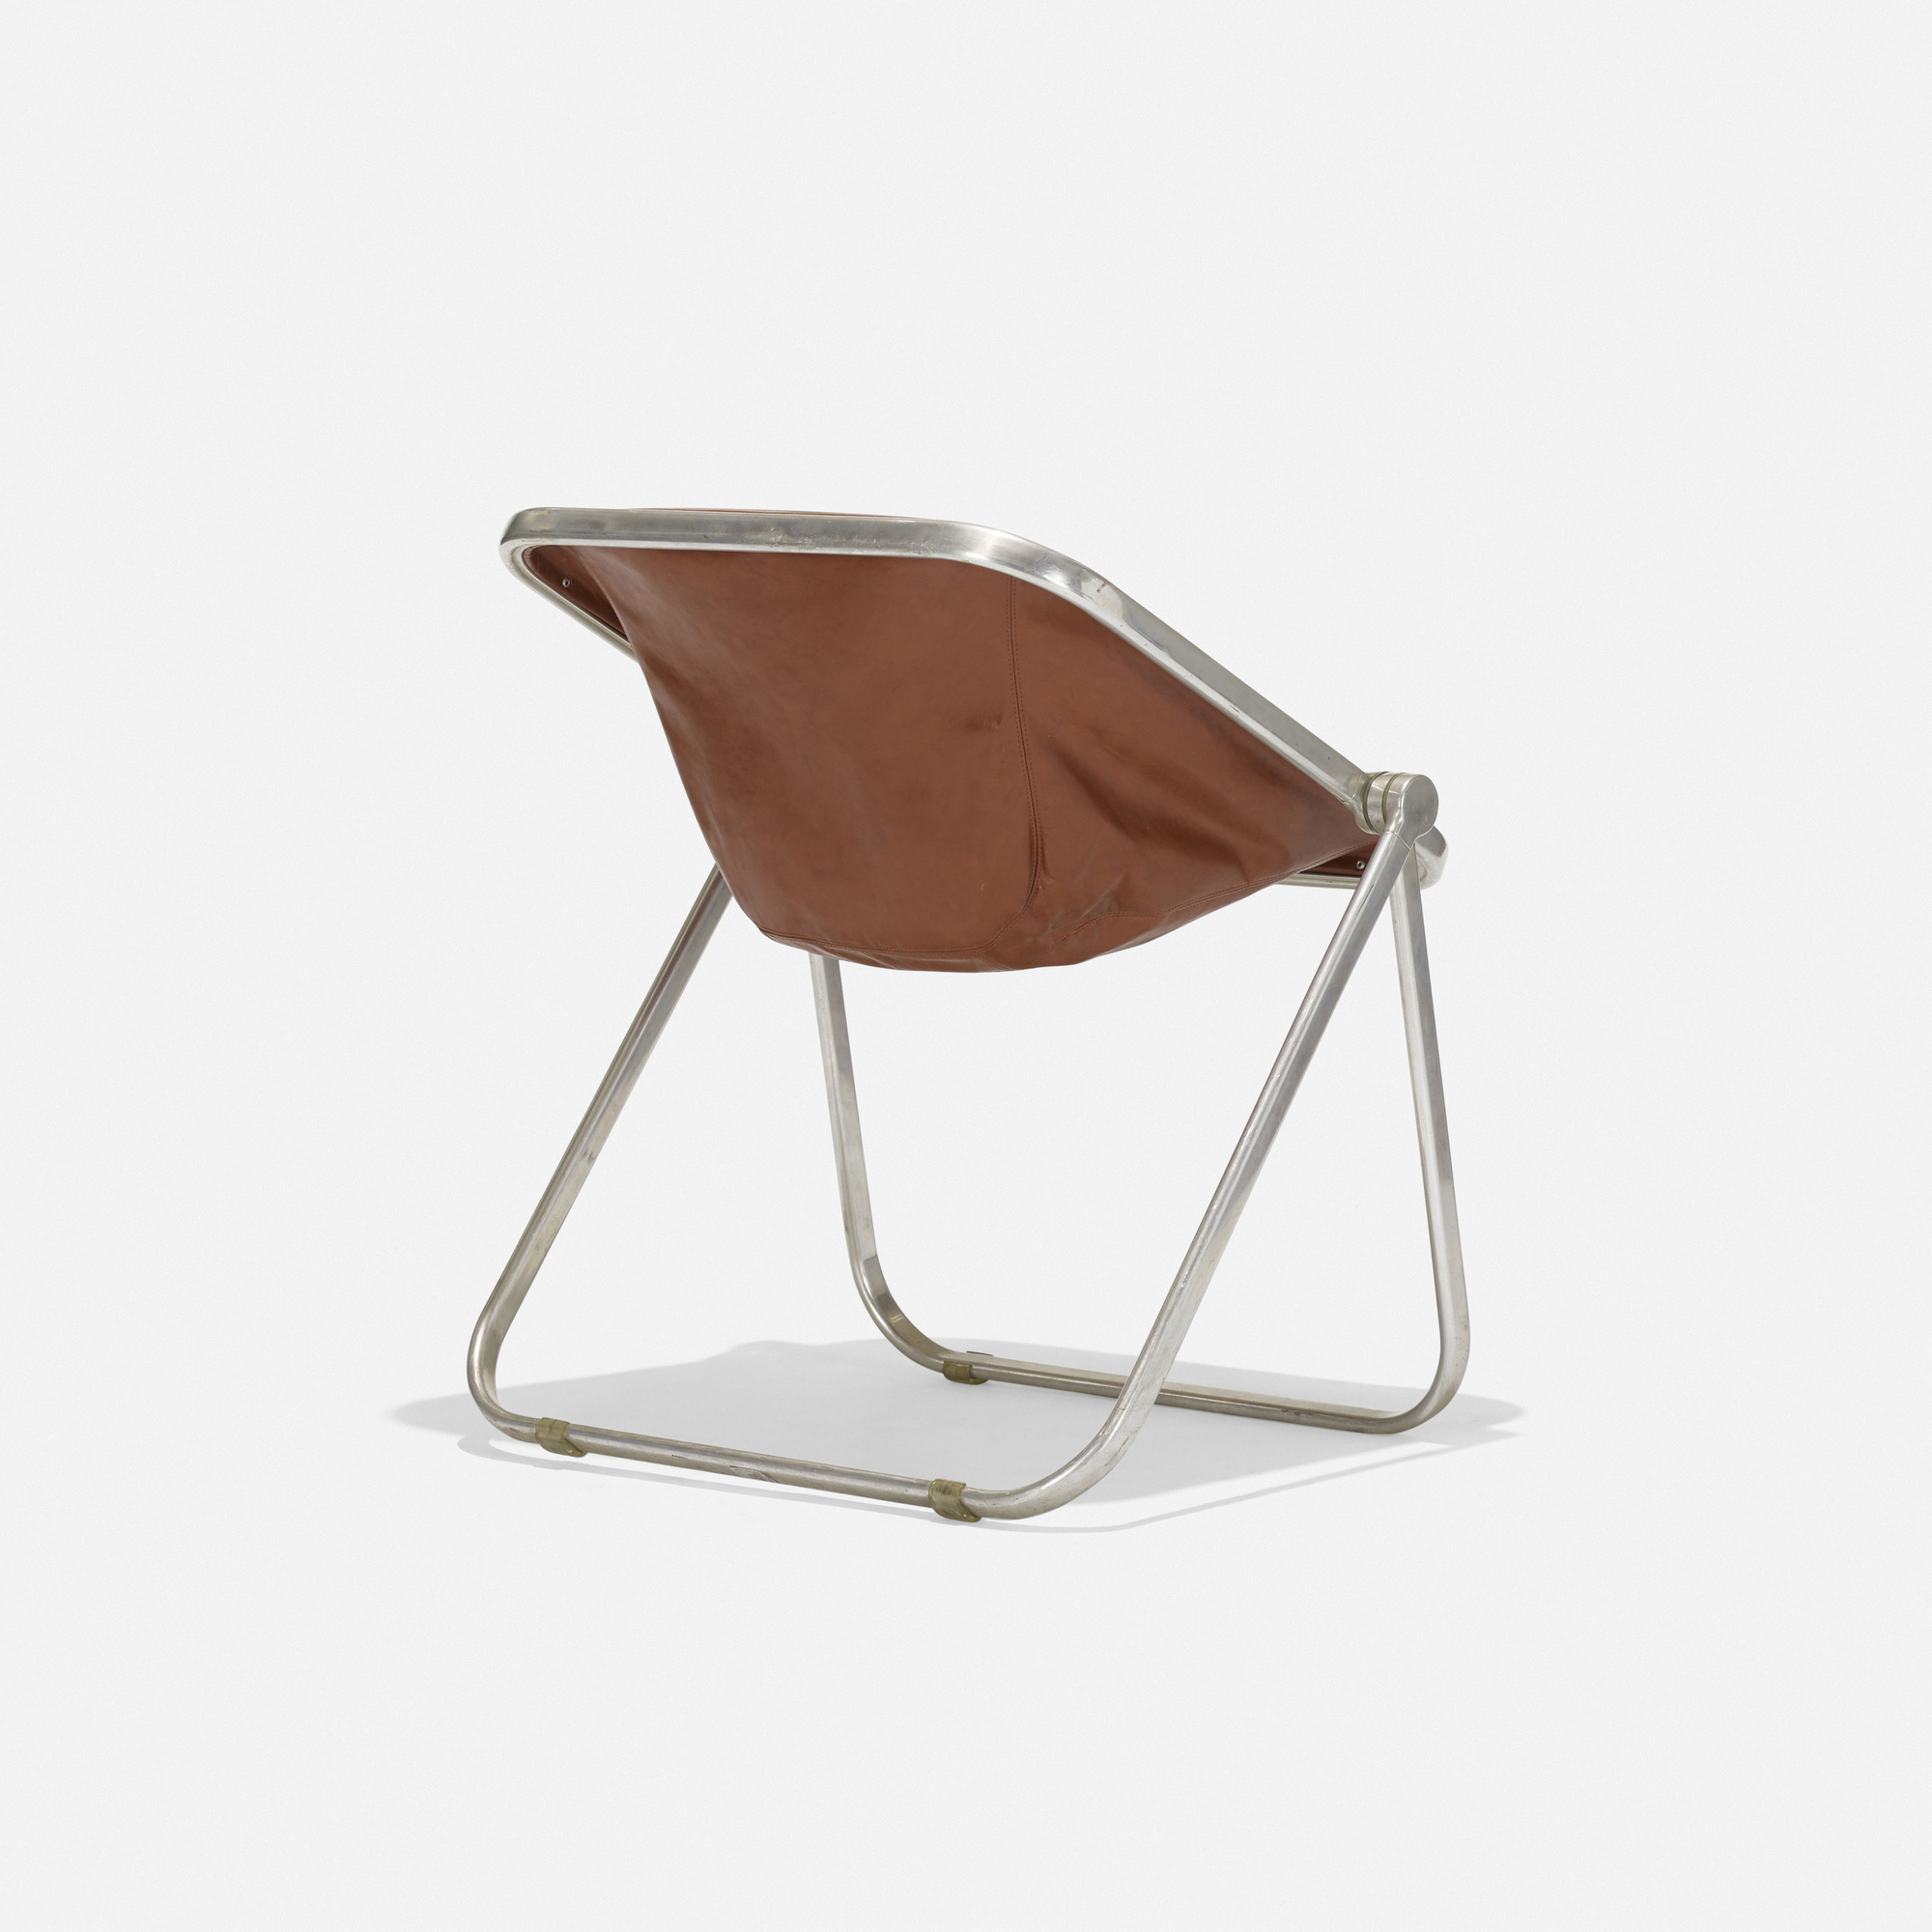 343: Giancarlo Piretti / Plona folding chair (2 of 3)